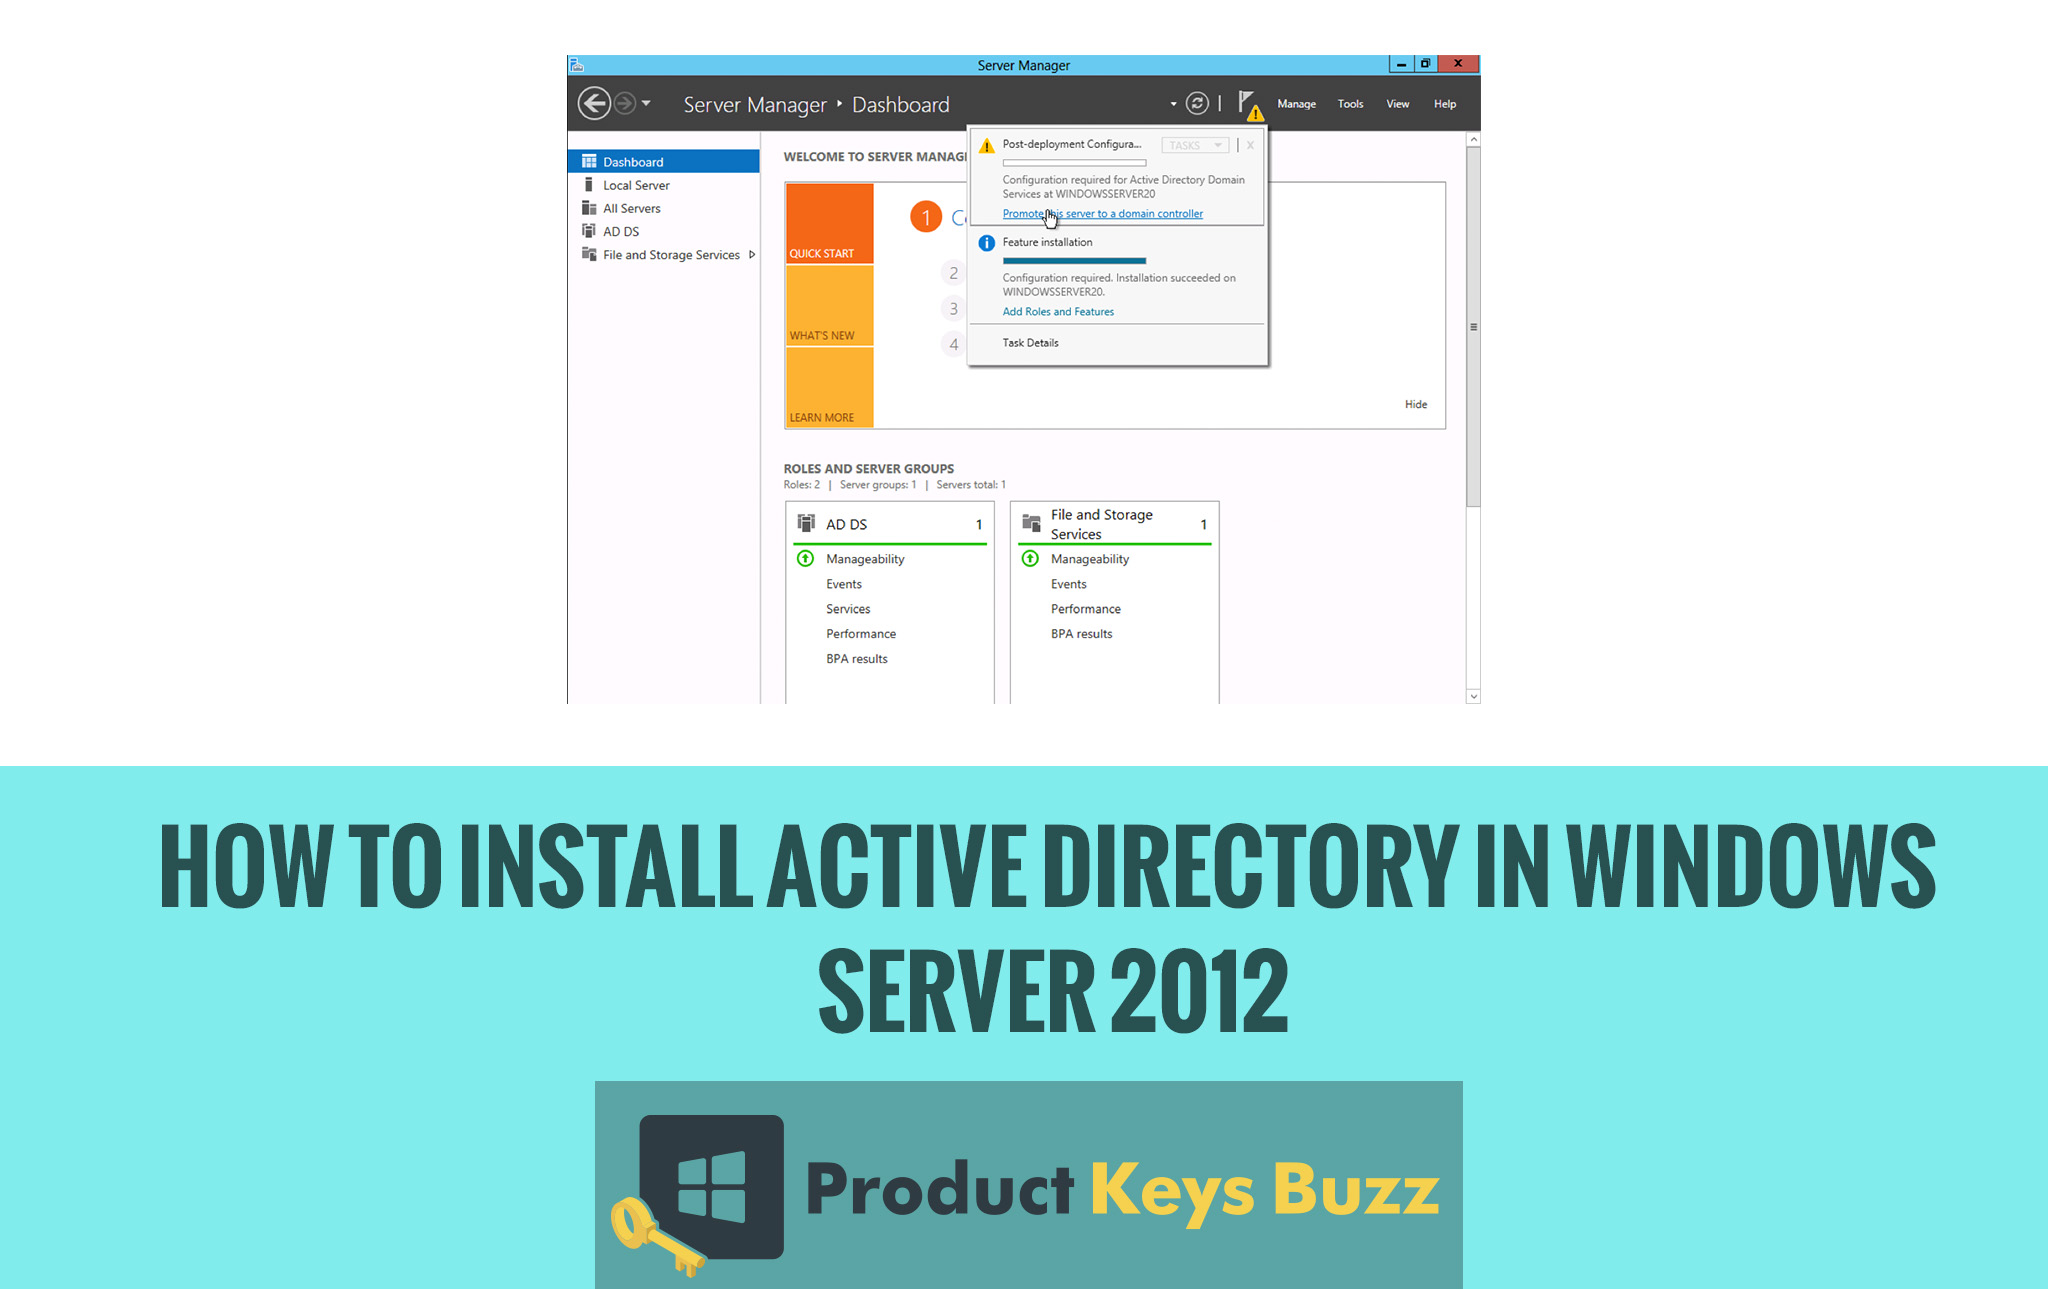 Complete Guide to Install Active Directory in Windows Server 2012